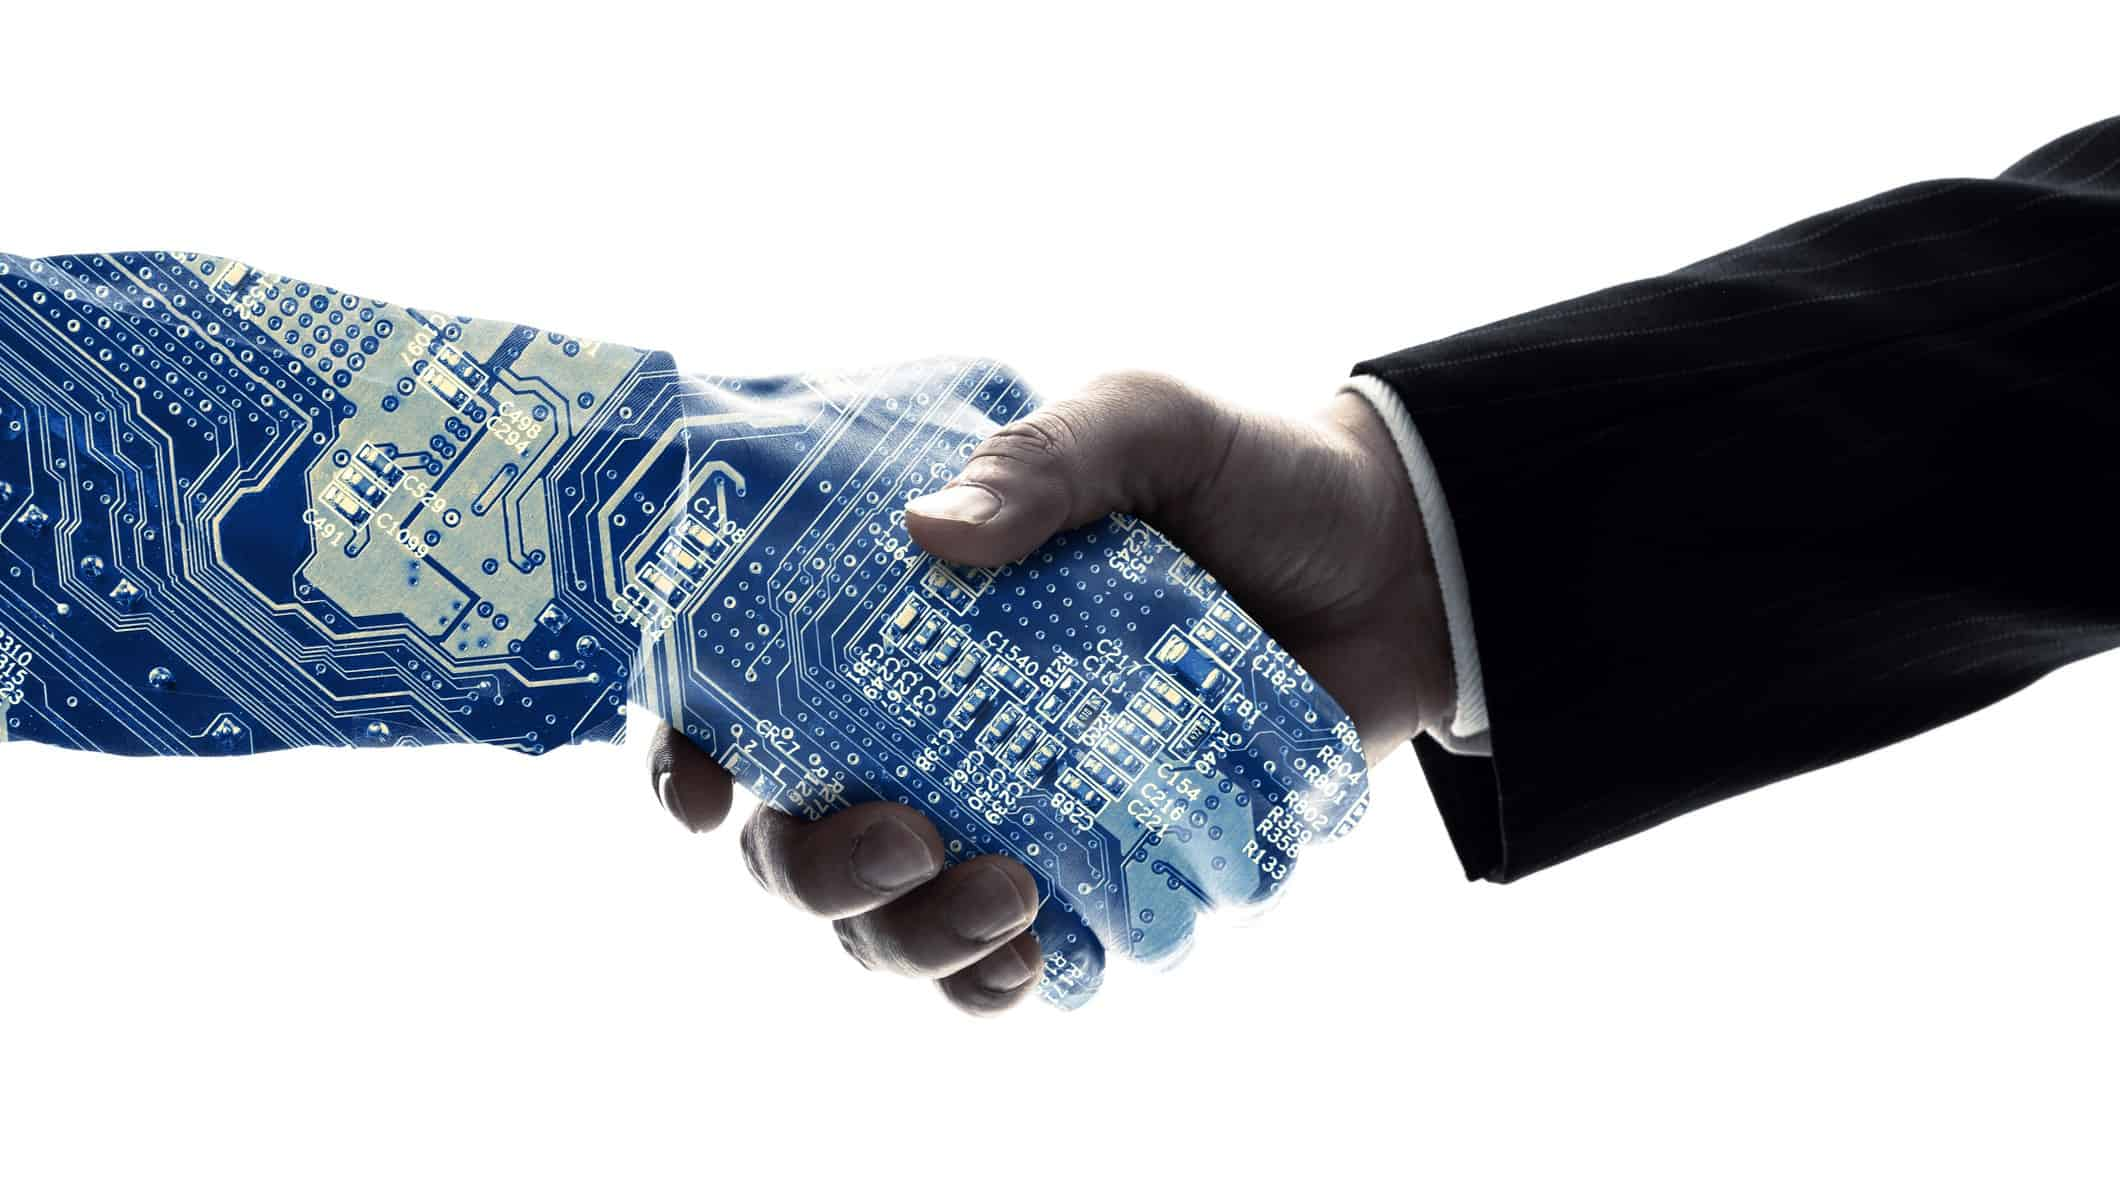 two harms shaking hands with one arm appearing as a circuit board representing senetas share price